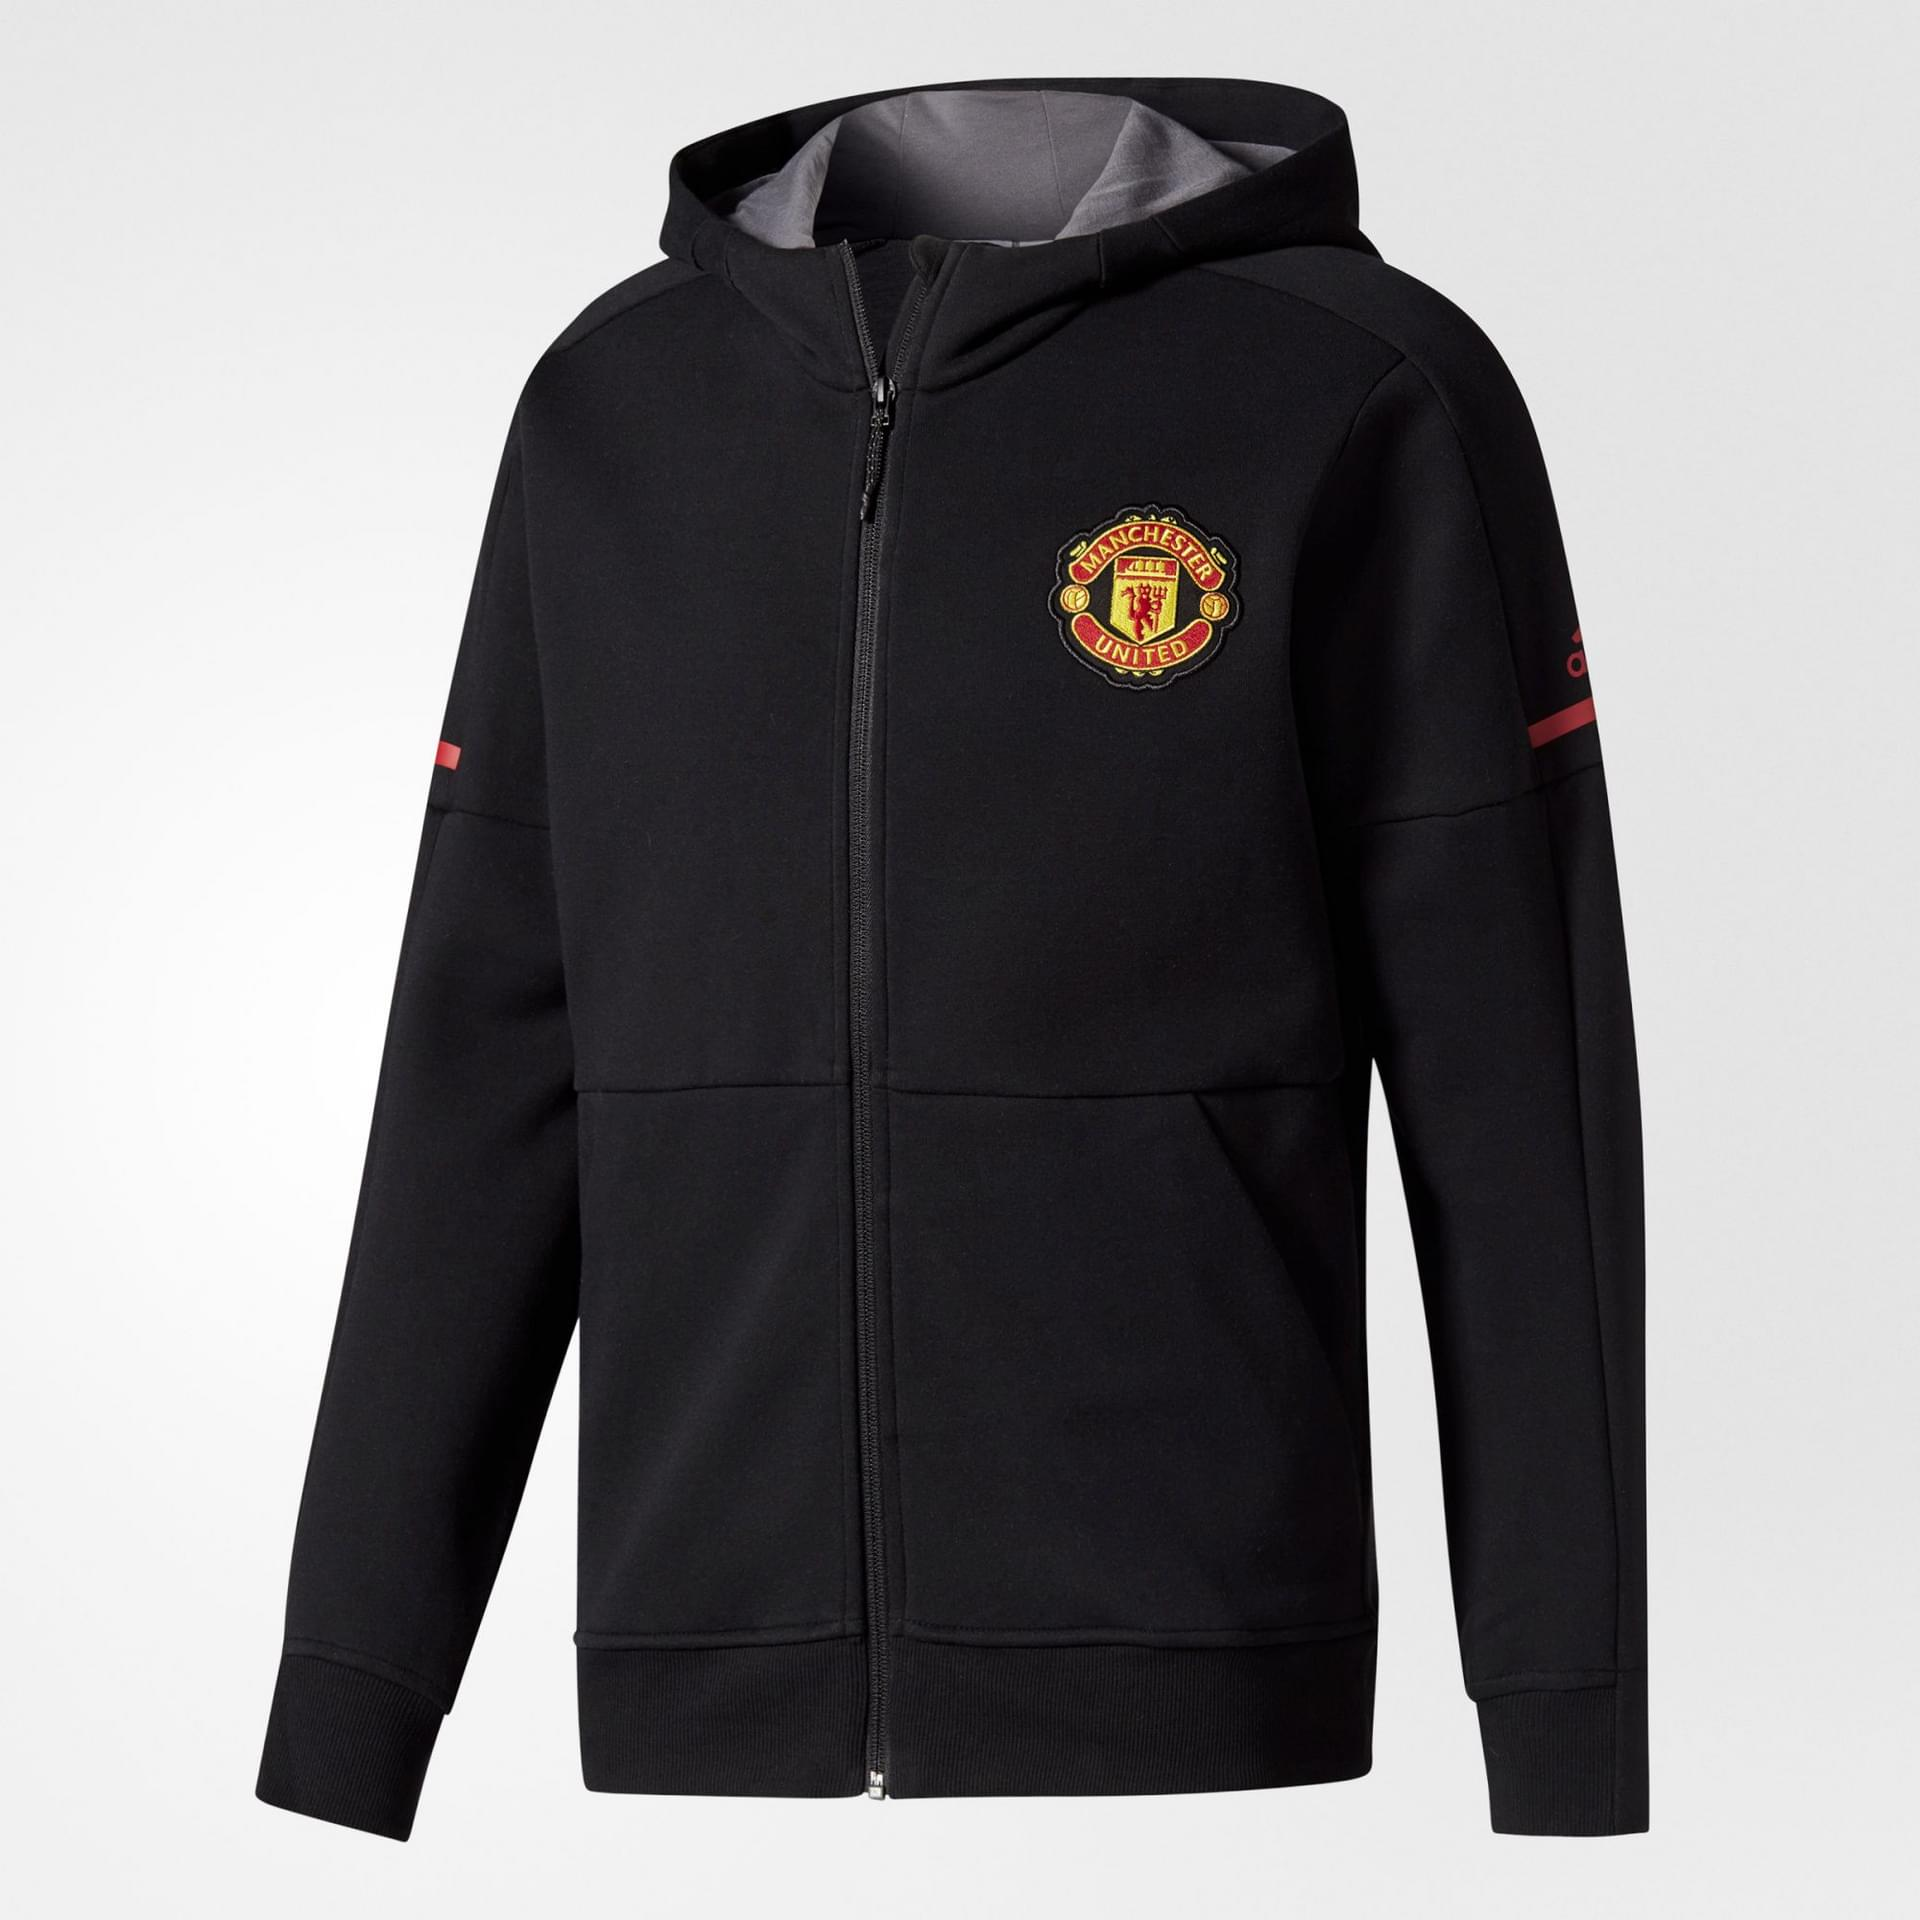 Manchester united hoodies